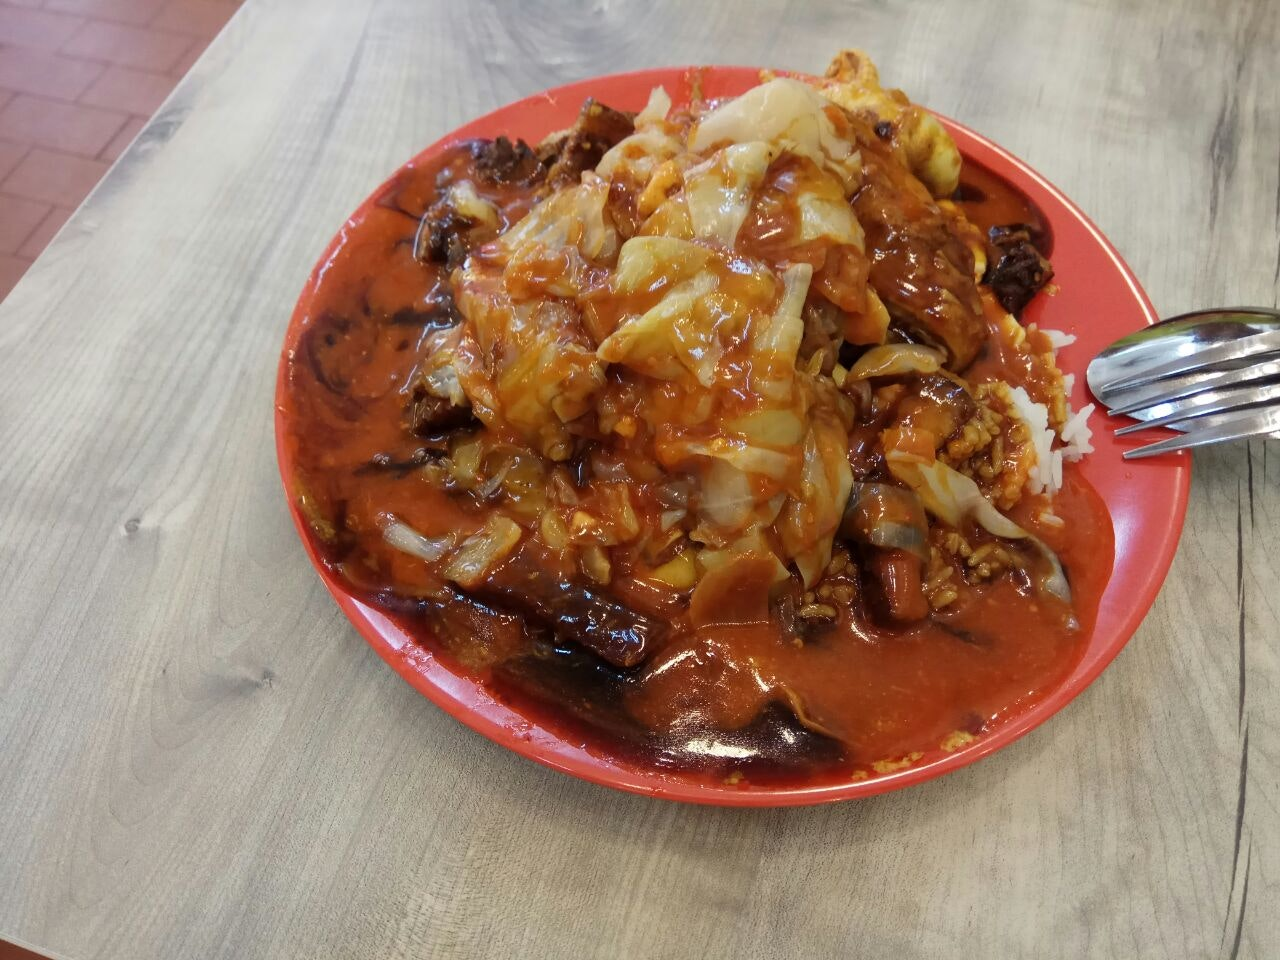 Spicy Sauce And Lor Only 10.8nett